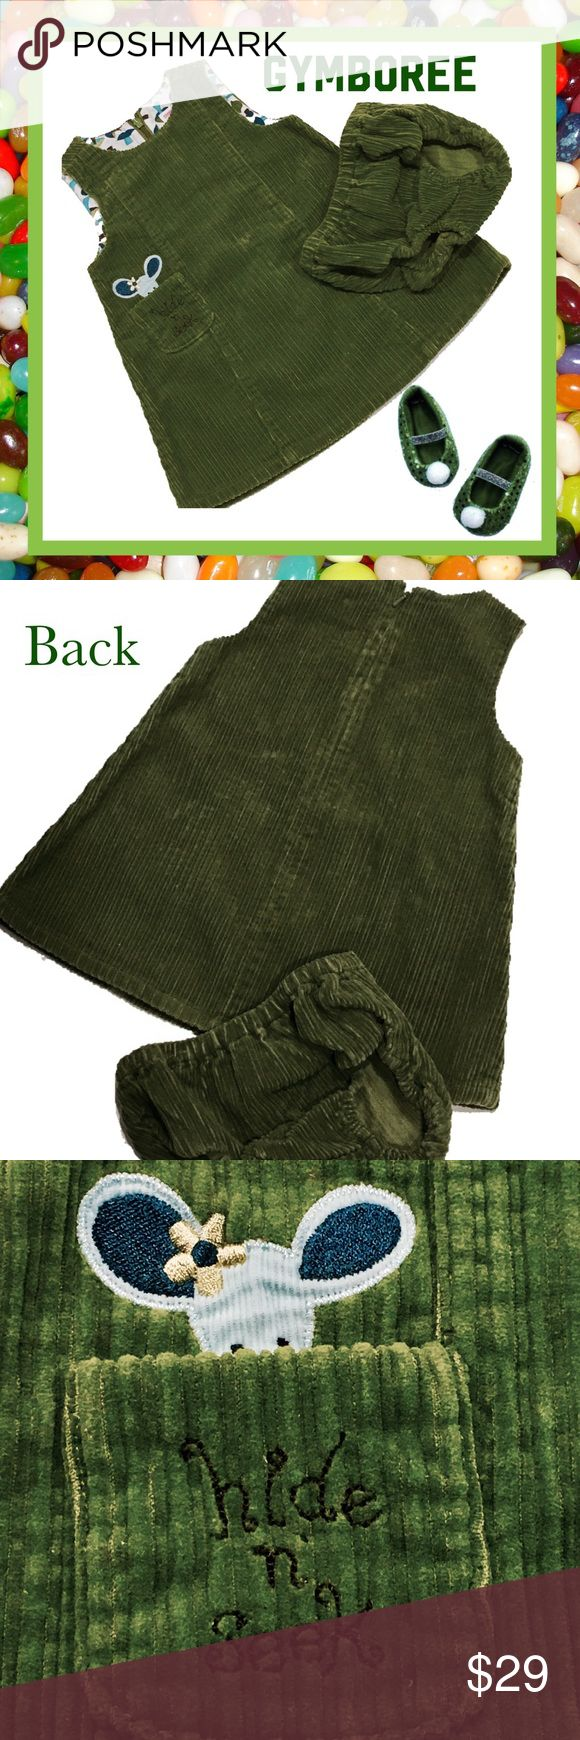 GYMBOREE Toddler Girl's Jumper & Pants 12 - 18 Mos Olive green corduroy toddler girl's 2-piece jumper and panties from Gymboree, size 12 - 18 months.  Excellent condition. Gymboree Matching Sets